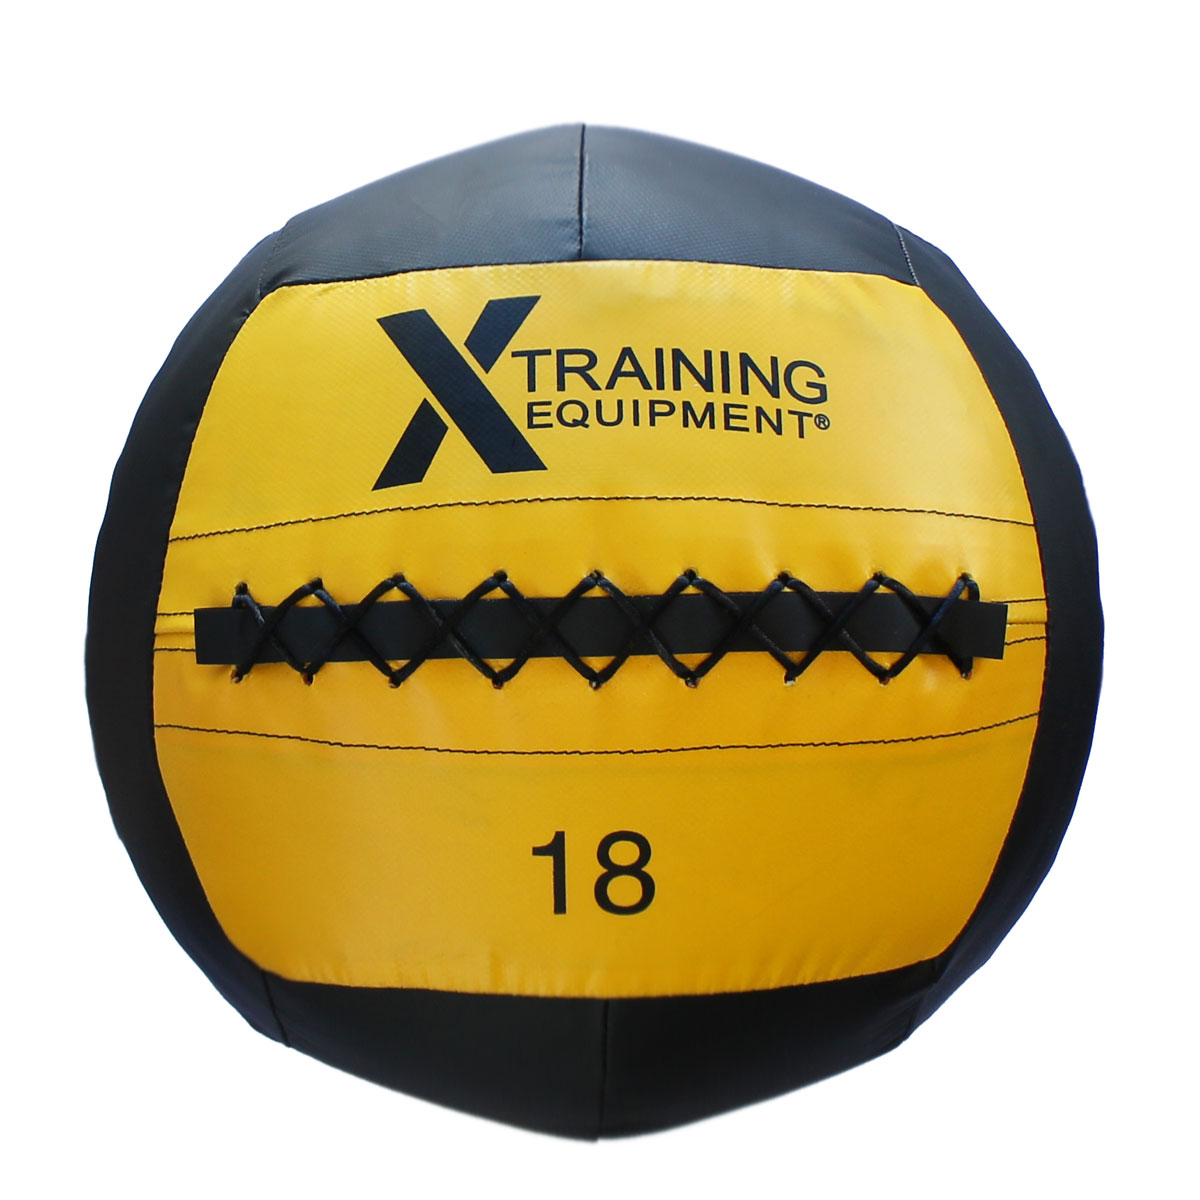 18lb wall ball heavy duty medicine ball free shippingx training� wall ball 18lb